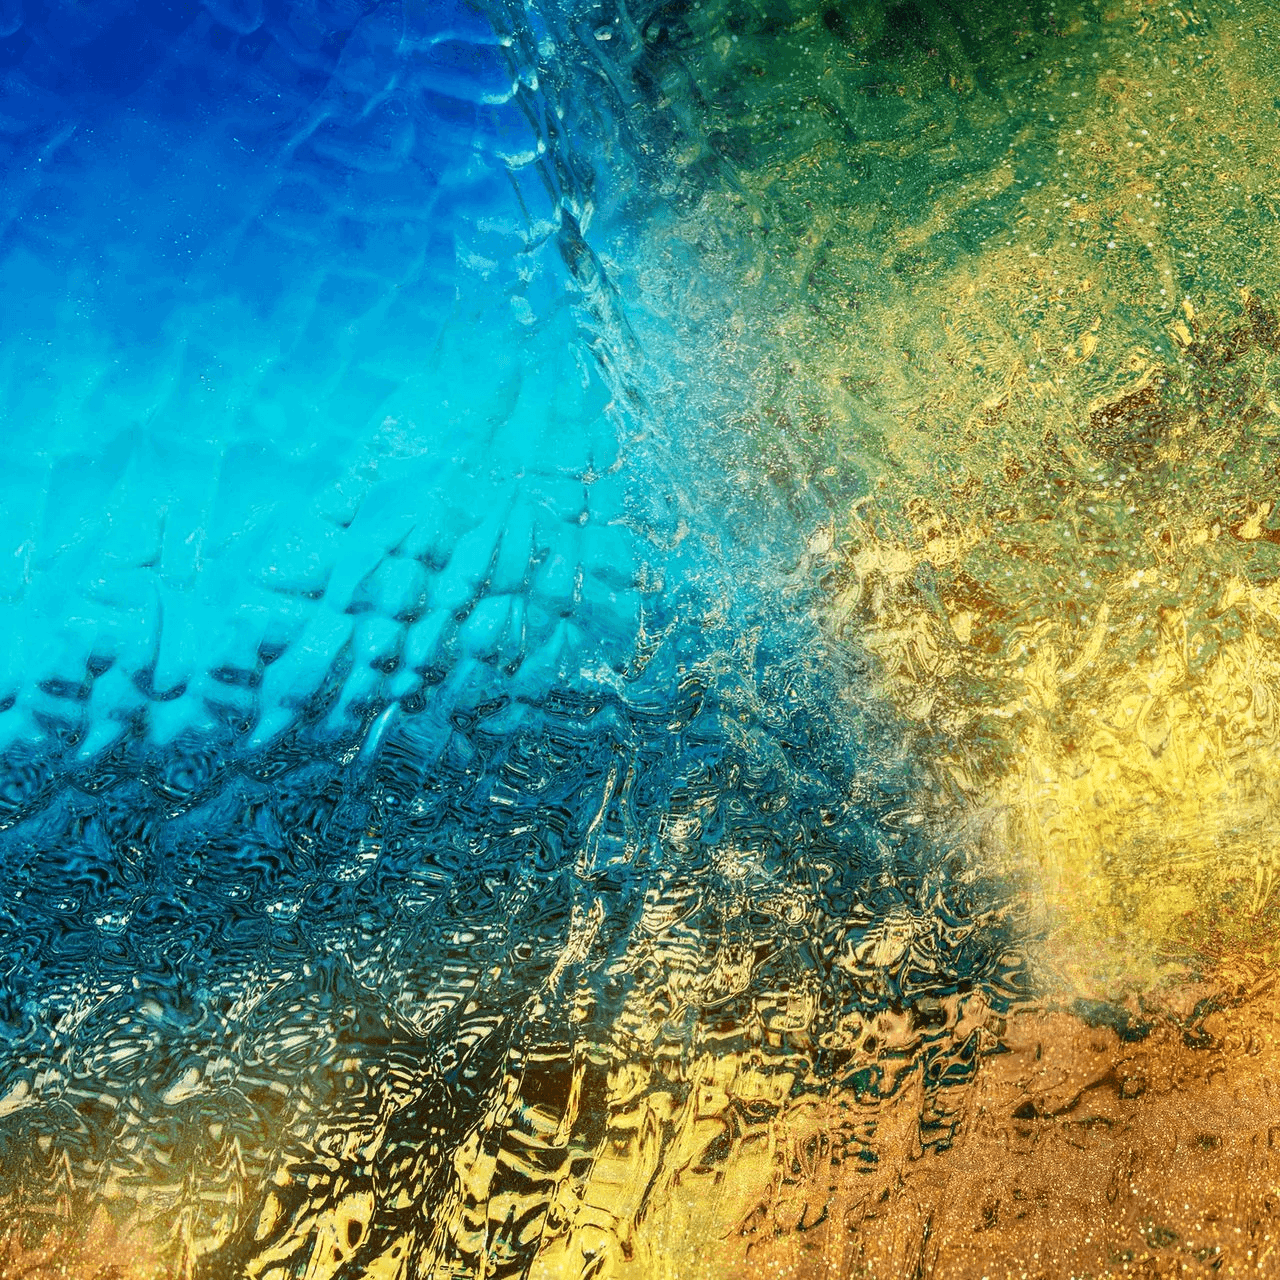 Devices Samsung Galaxy A7 Mobile Tablet Hd Wallpaper Devices Samsung Galaxy Mobile Tablet Wallpaper 13 Samsung Galaxy Background Hd Wallpaper Galaxy